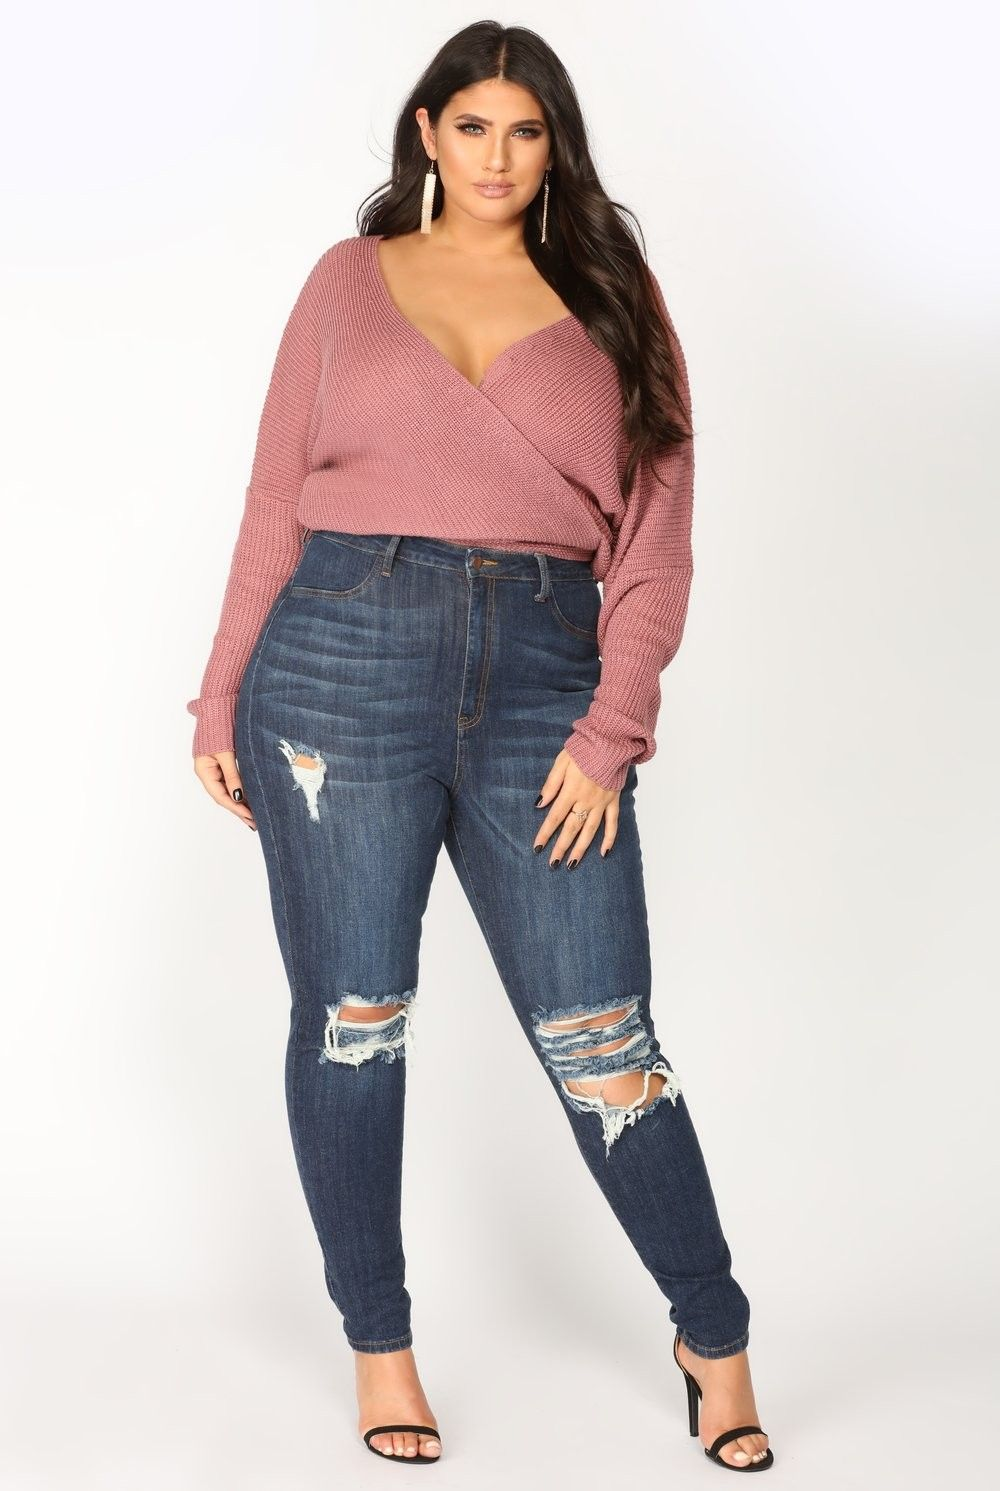 cd4825604eb Plus Size Delirious Distressed Skinny Jeans - Dark Denim  34.99  fashion   moda  ootd  outfit  outfits  plussize  plussizejeans  curvyjeans  curvy   curve ...